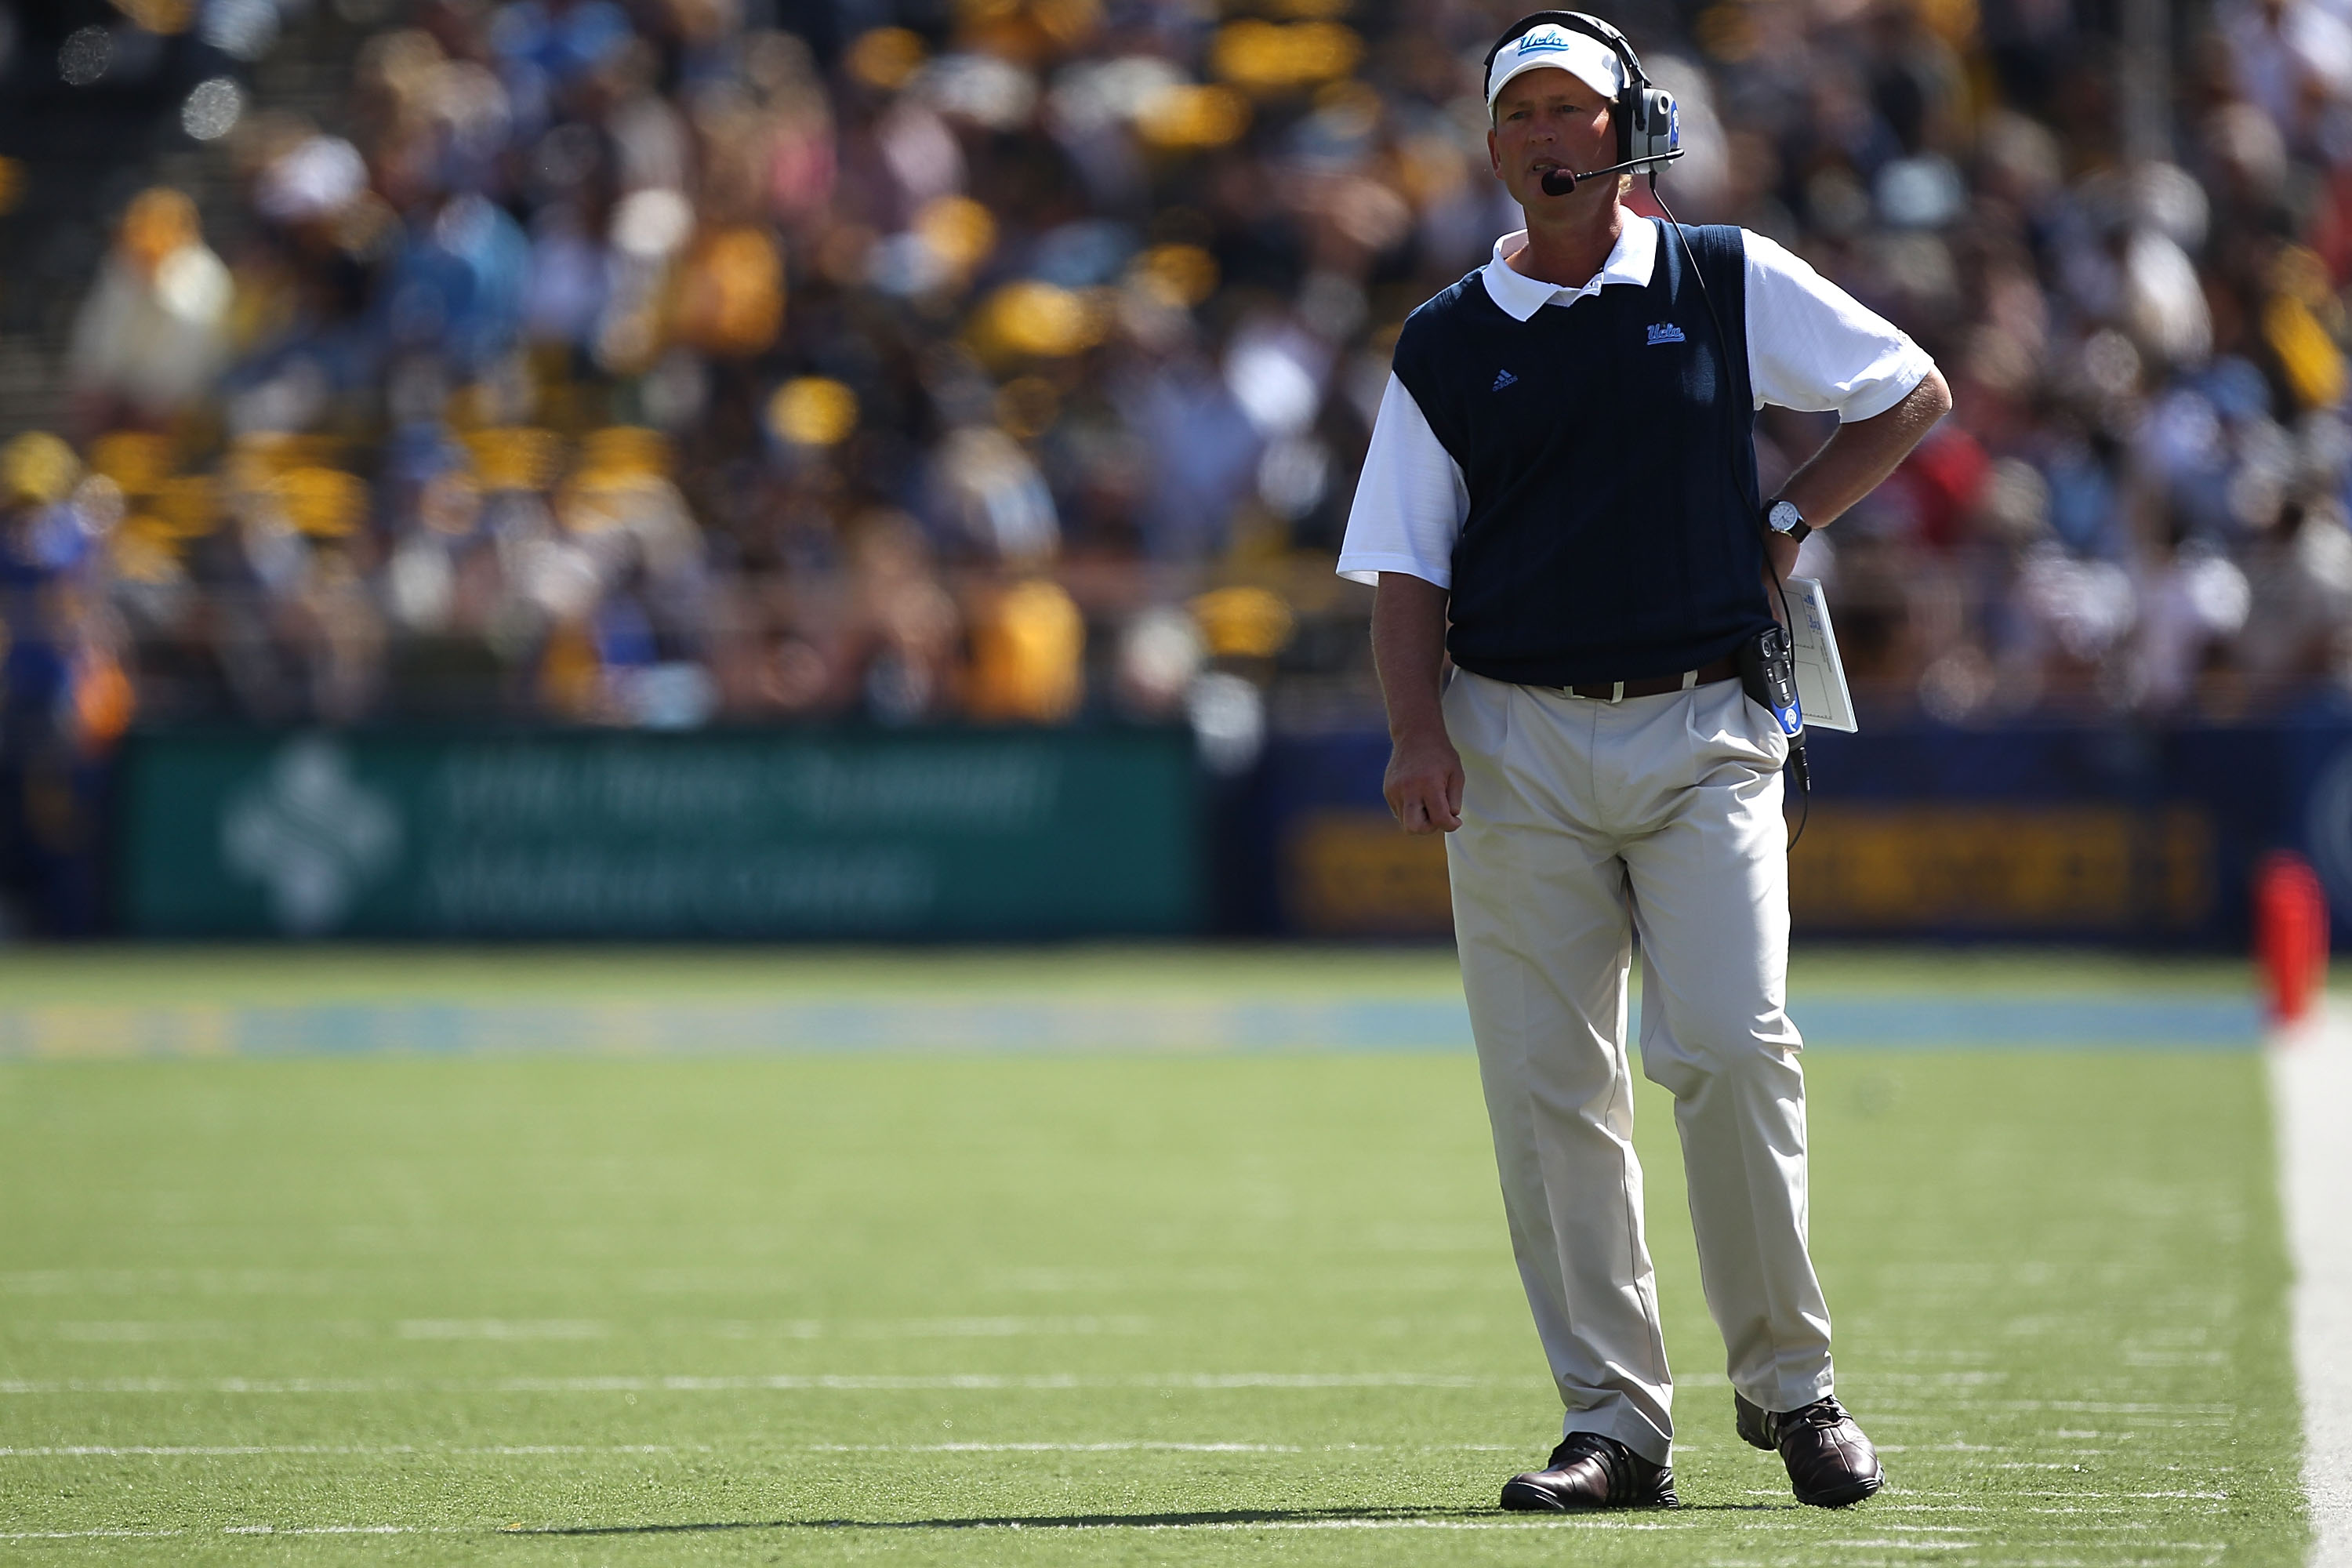 BERKELEY, CA - OCTOBER 09:  Head coach Rick Neuheisel of the UCLA Bruins looks on against the California Golden at California Memorial Stadium on October 9, 2010 in Berkeley, California.  (Photo by Jed Jacobsohn/Getty Images)